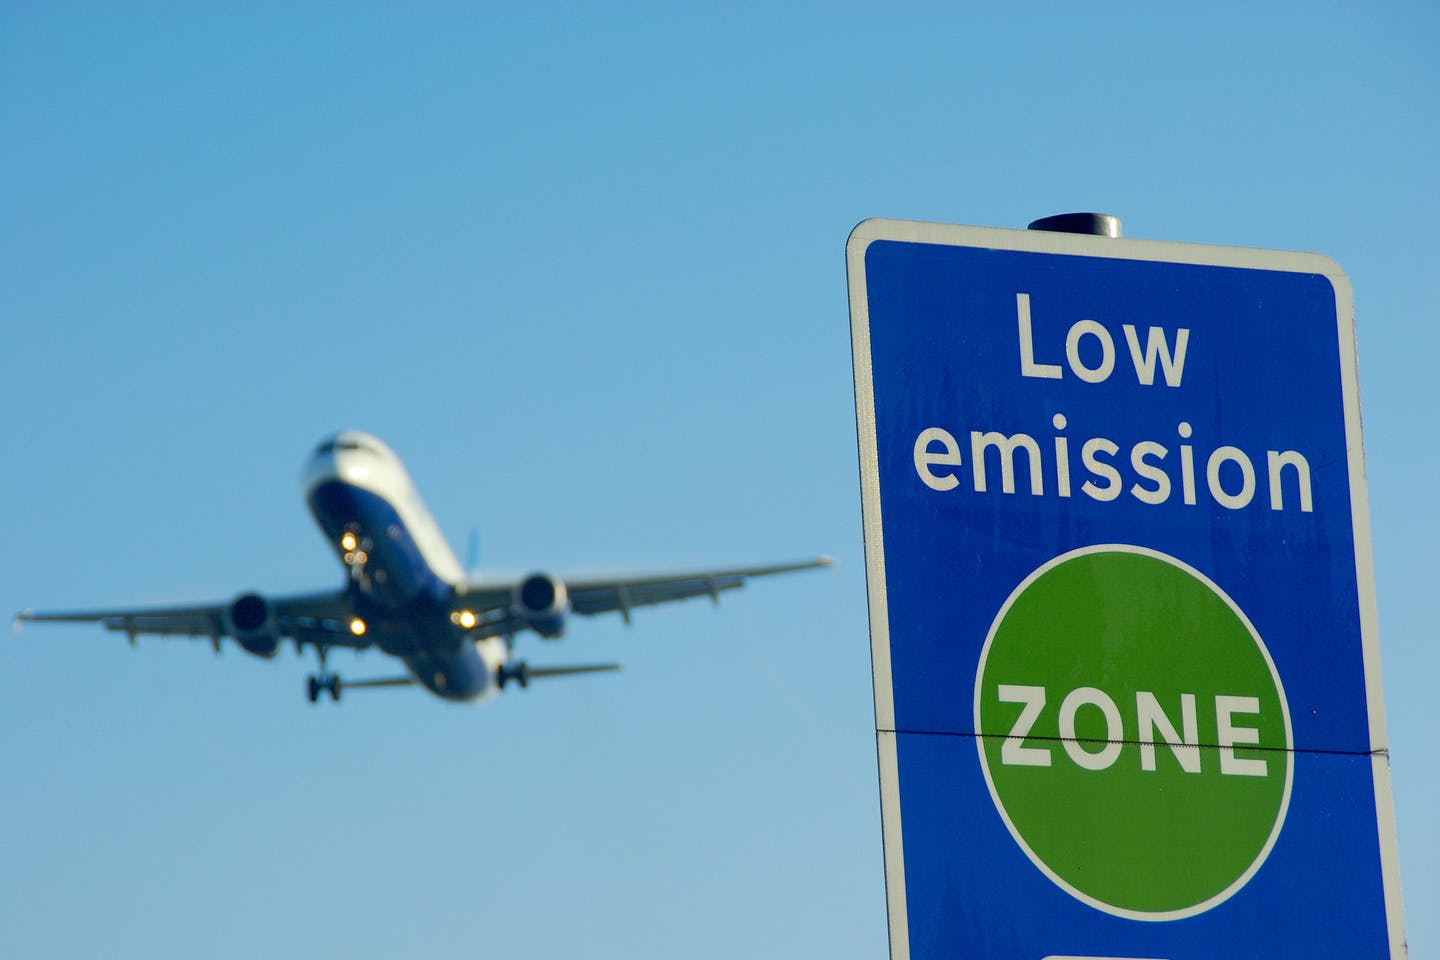 emissions free zone